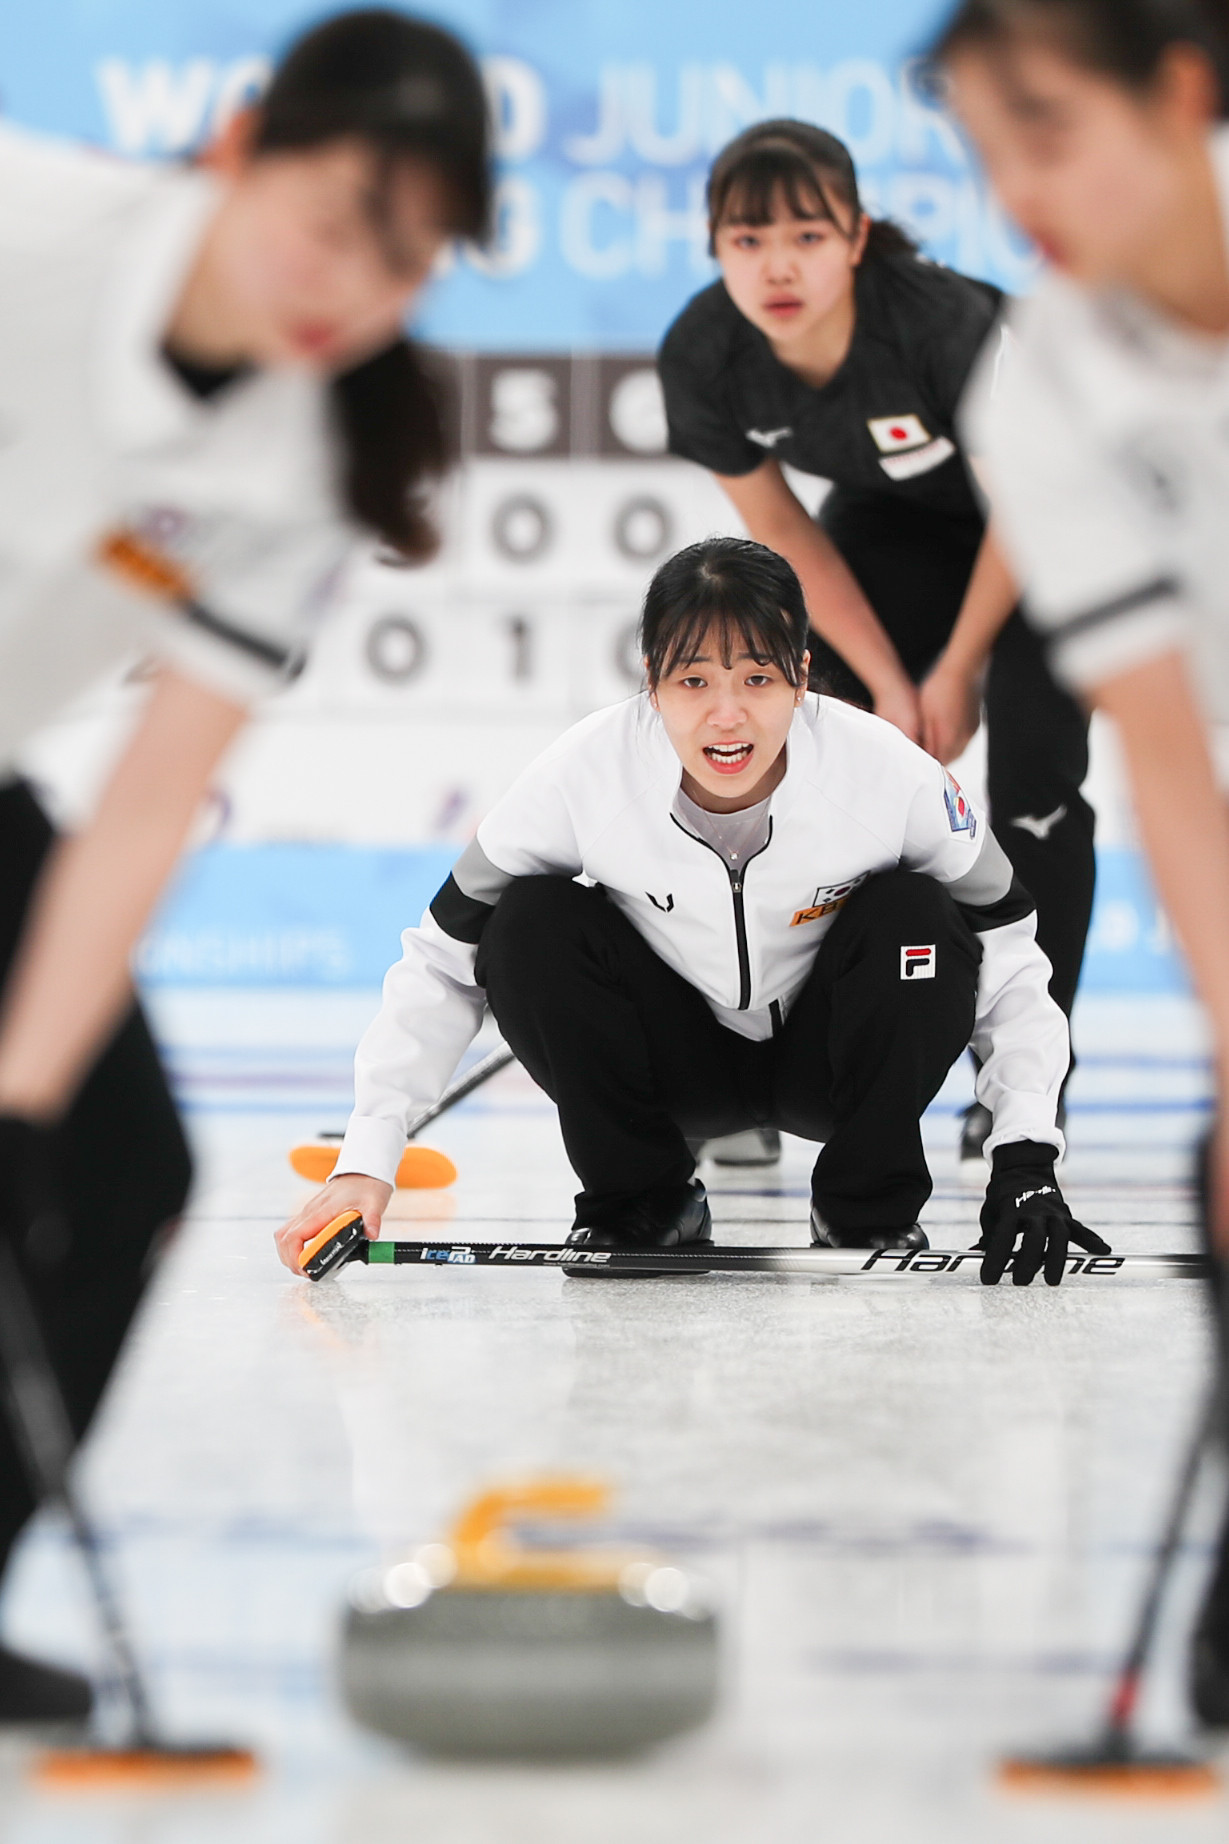 South Korea's women's team have continued their tear at the World Junior Curling Championships with nine wins from nine ahead of the semi-finals in  Krasnoyarsk ©WCF